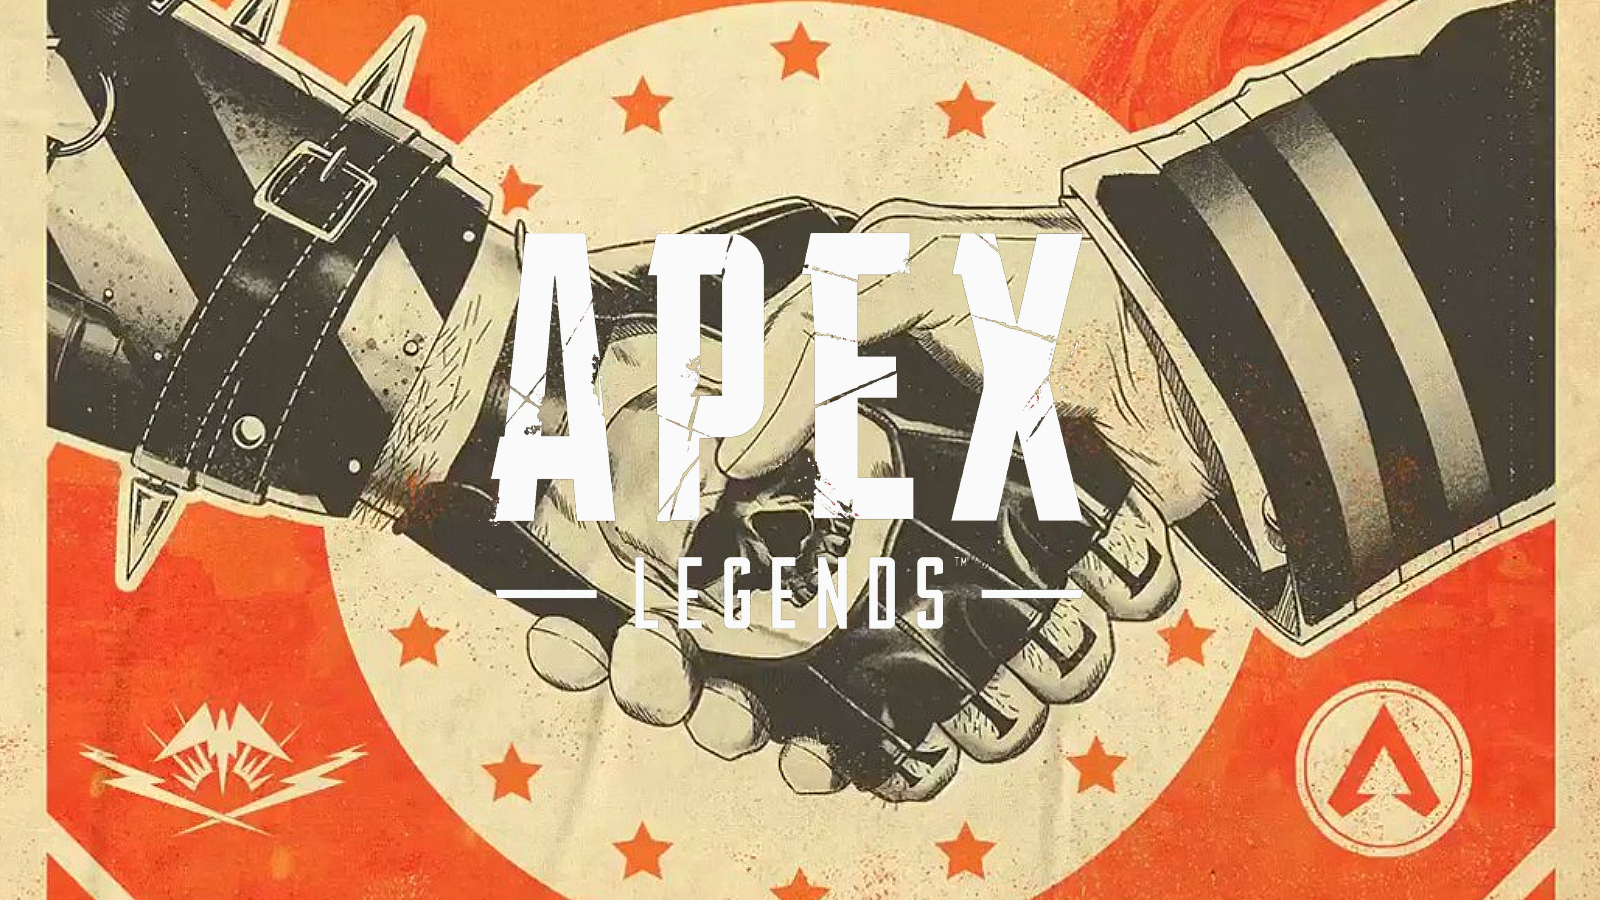 Season 8 teasers apex Legends